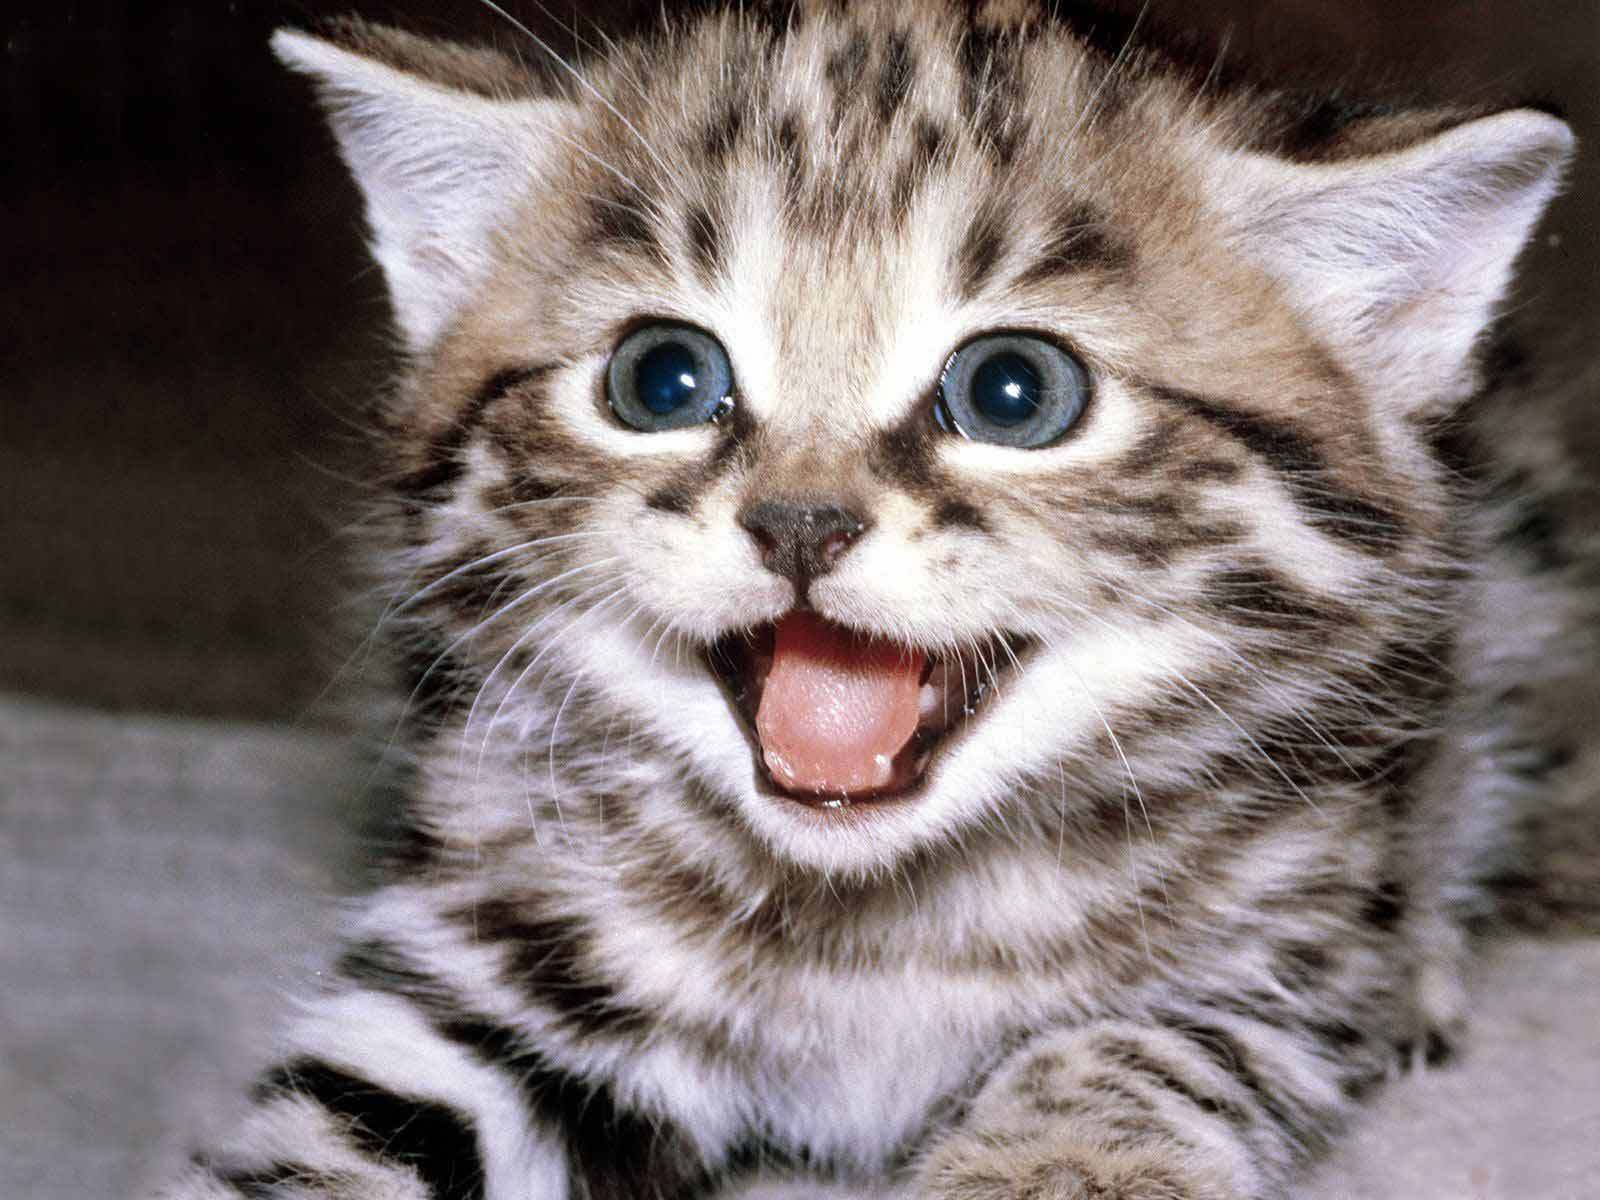 Cute Wallpapers - Cute Kittens Wallpaper (10501757) - Fanpop